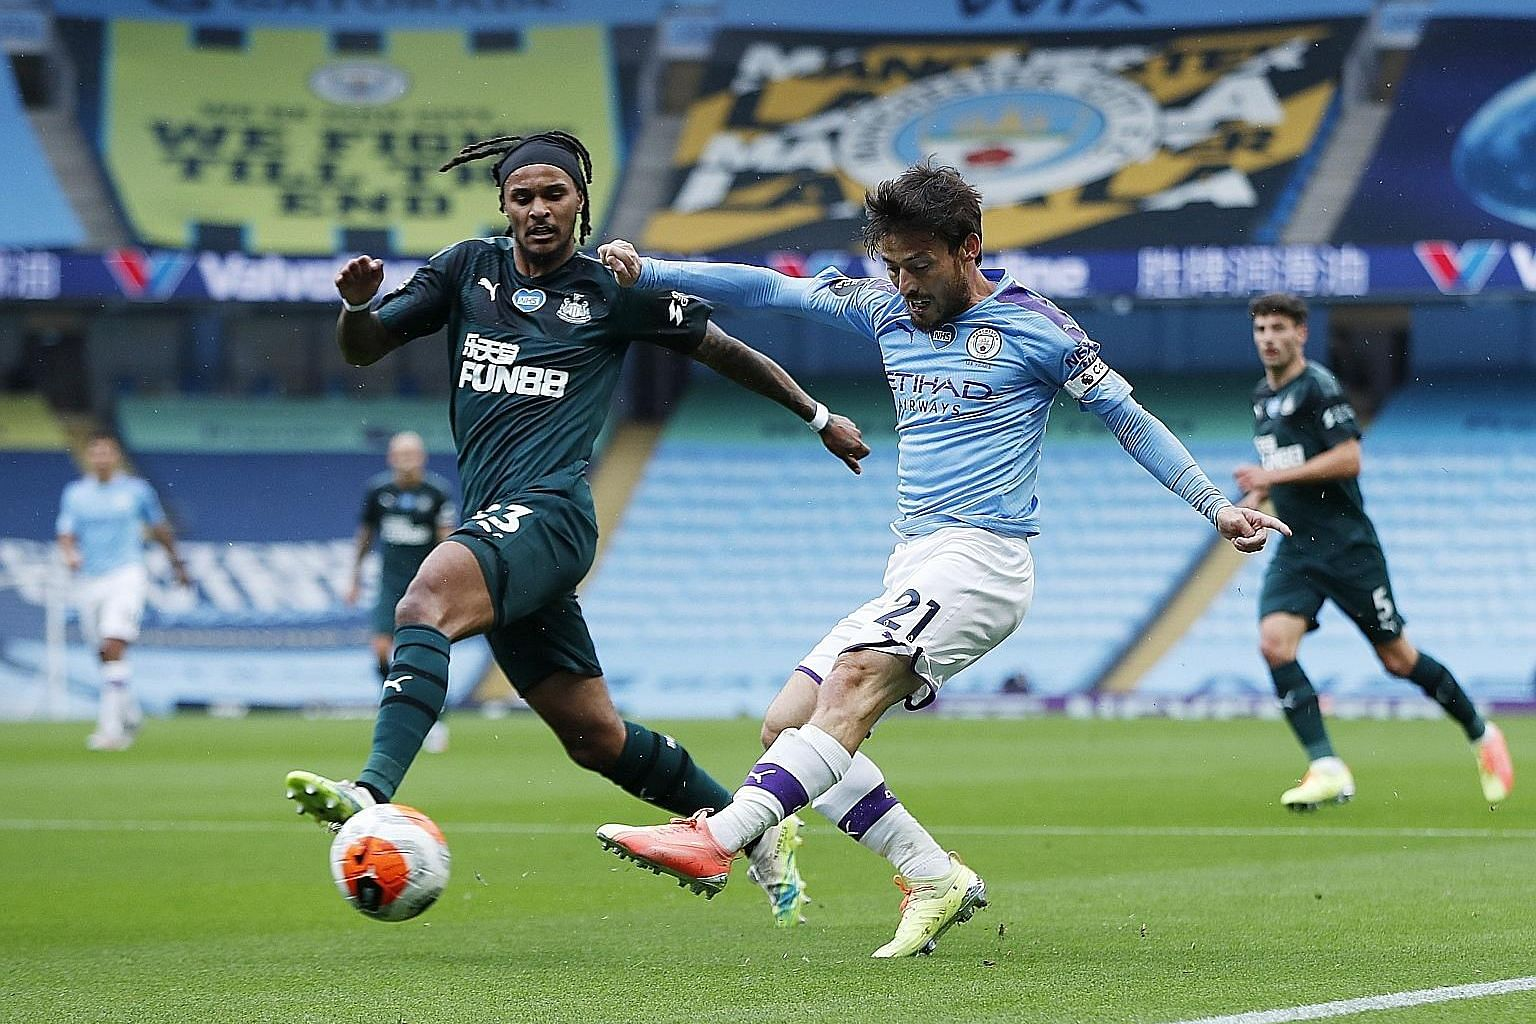 Manchester City's David Silva, seen shooting under pressure from Newcastle's Valentino Lazaro, scored from a free kick and set up goals for Gabriel Jesus and Raheem Sterling in City's 5-0 win on Wednesday. PHOTO: REUTERS